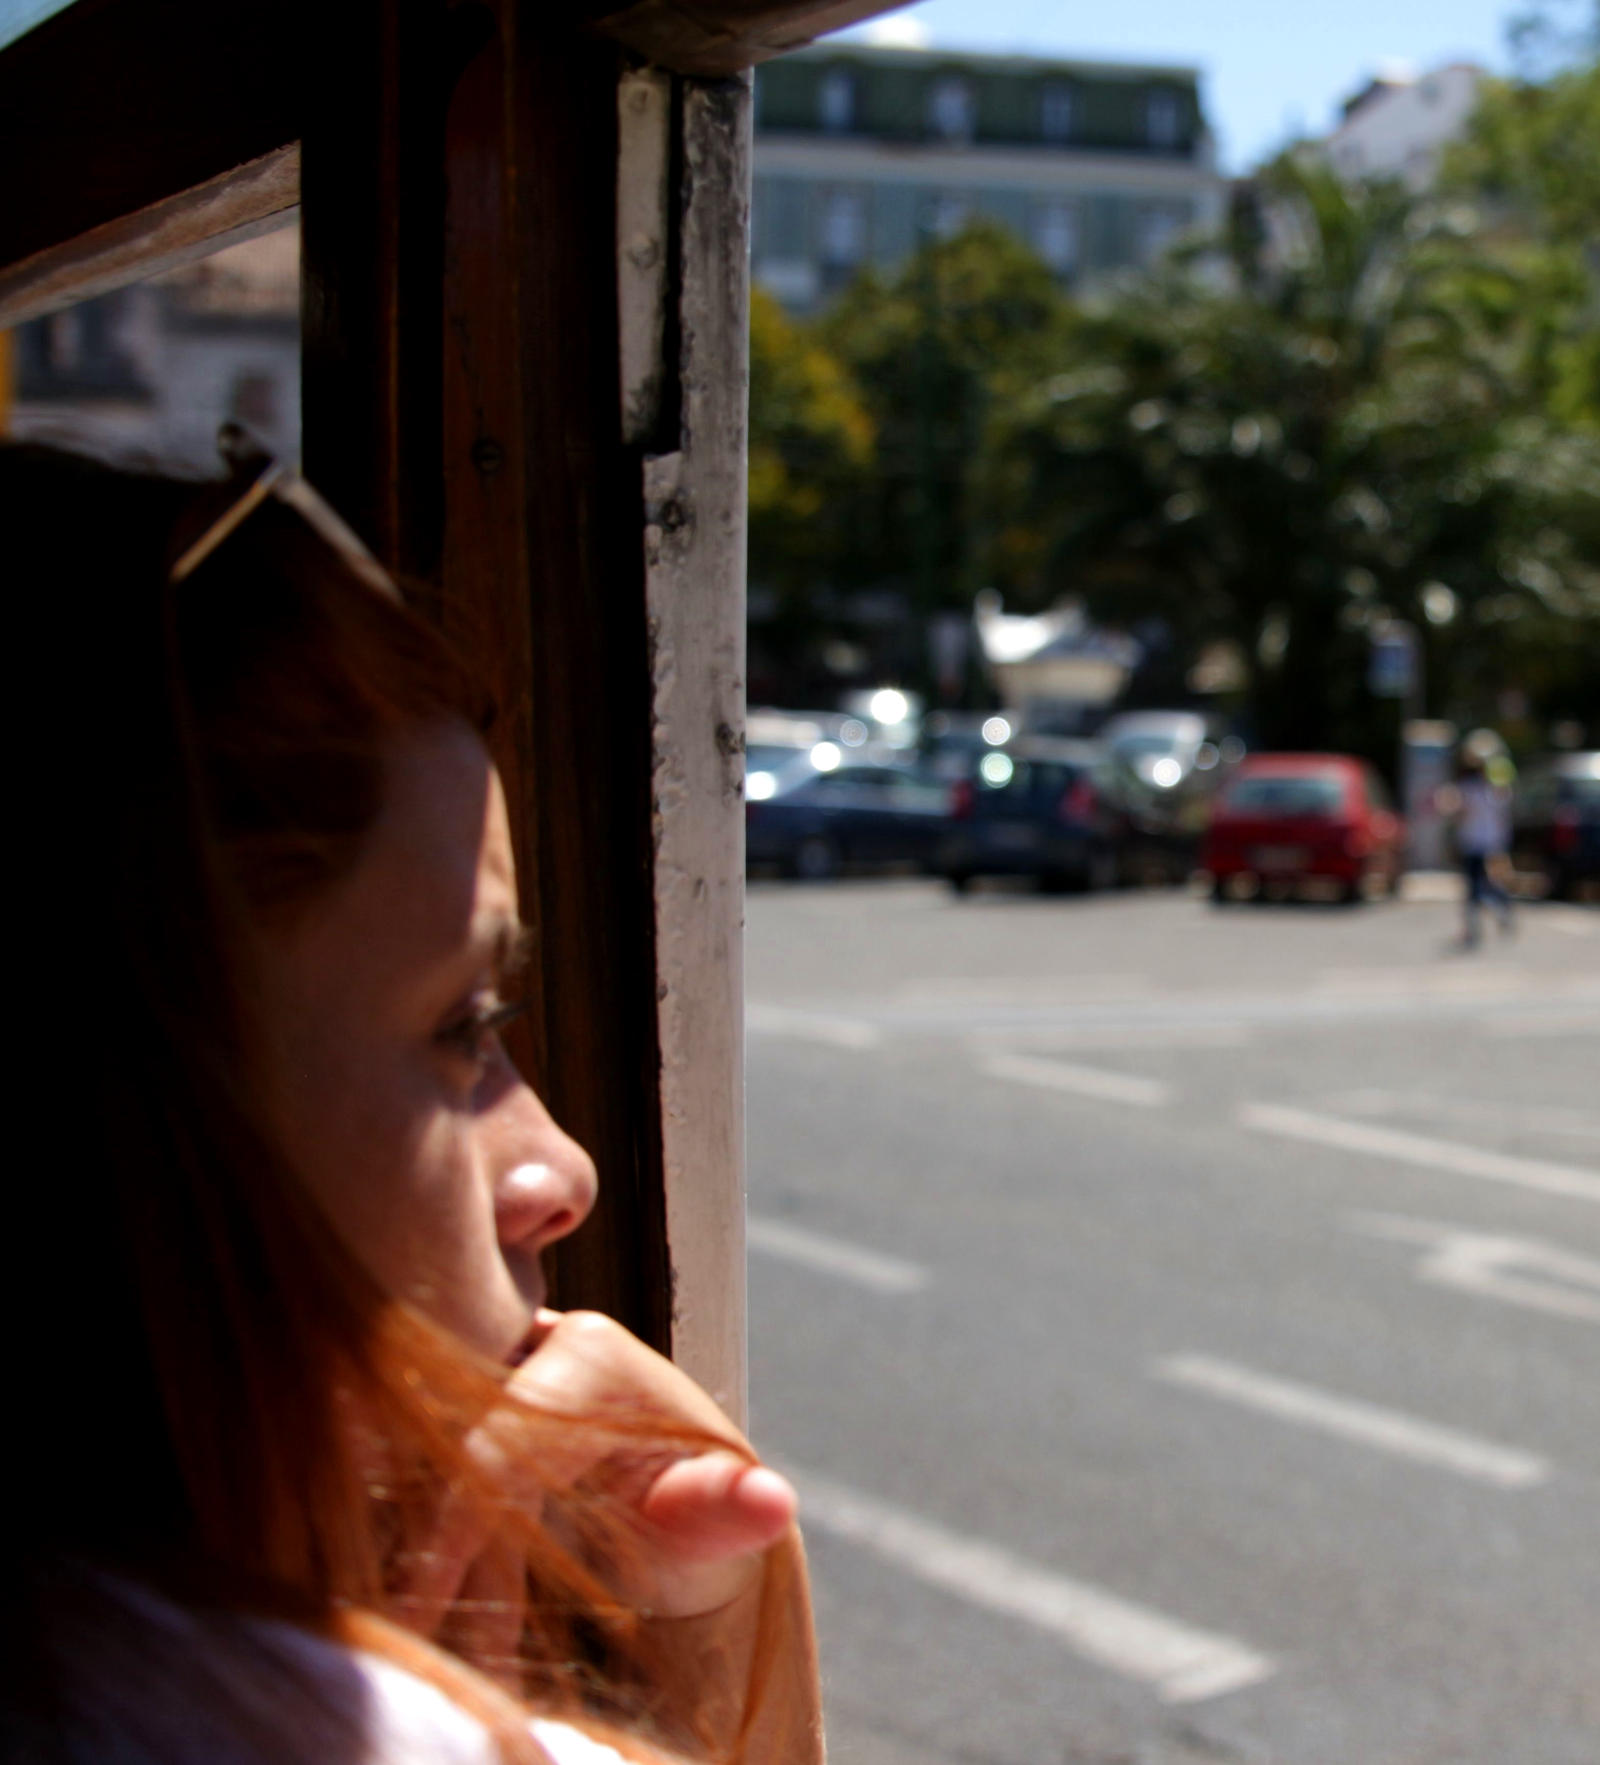 Lisbon - Out of tram by LoveForDetails